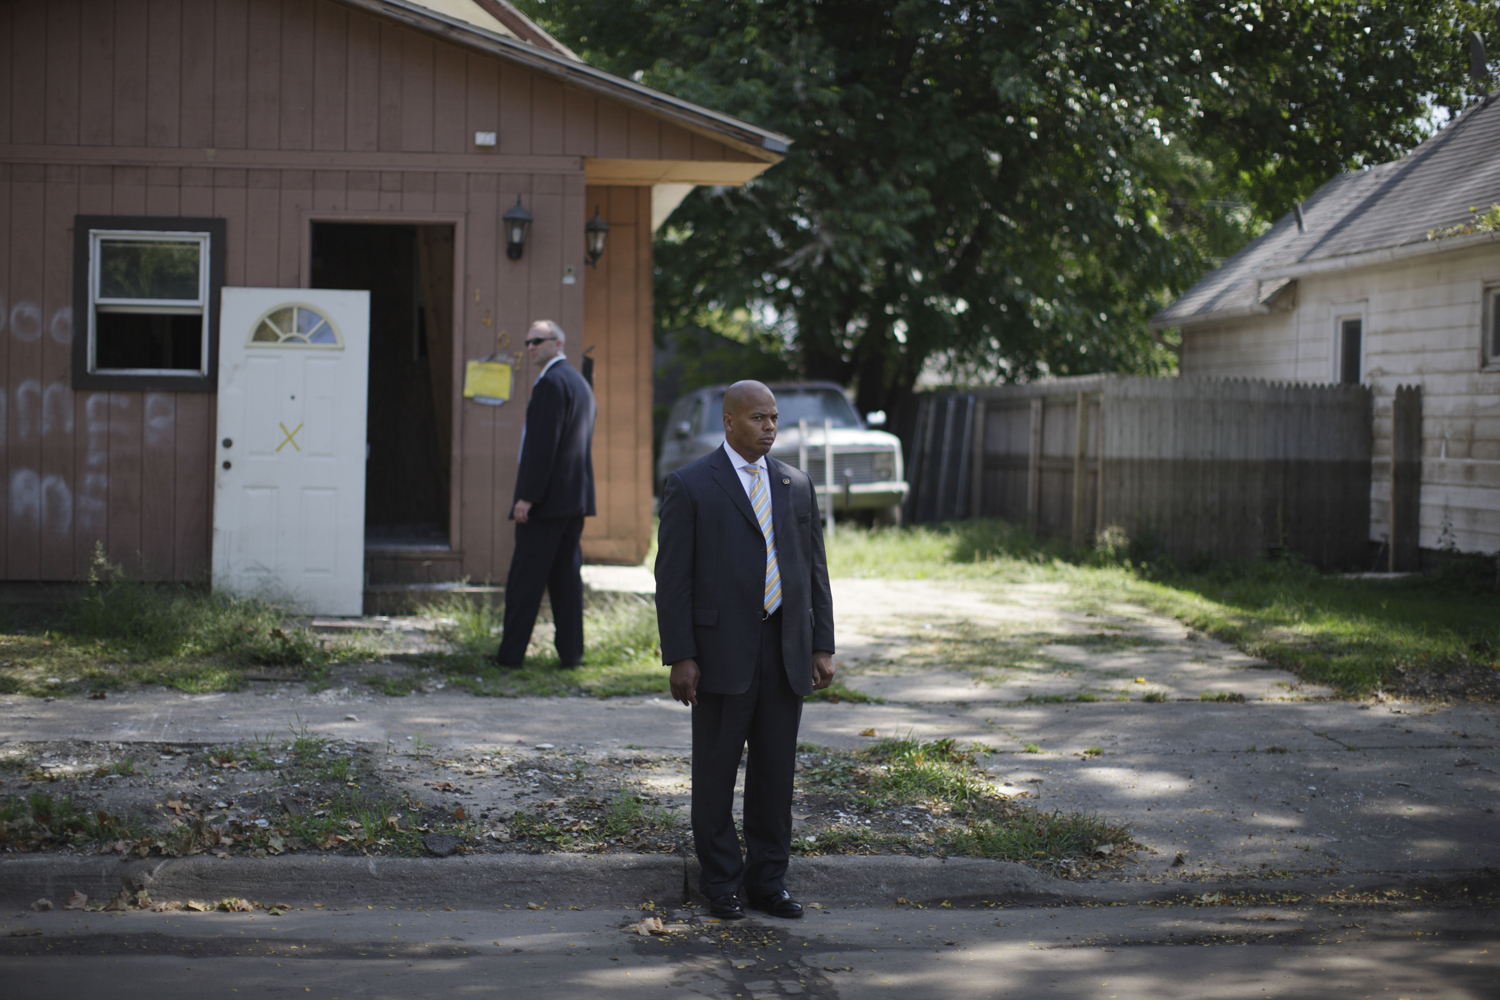 A Secret Service agent stands in the street as Republican presidential candidate John McCain and his running mate Sarah Palin tour a previously flooded neighborhood in Cedar Rapids, Iowa, Sept. 18, 2008.